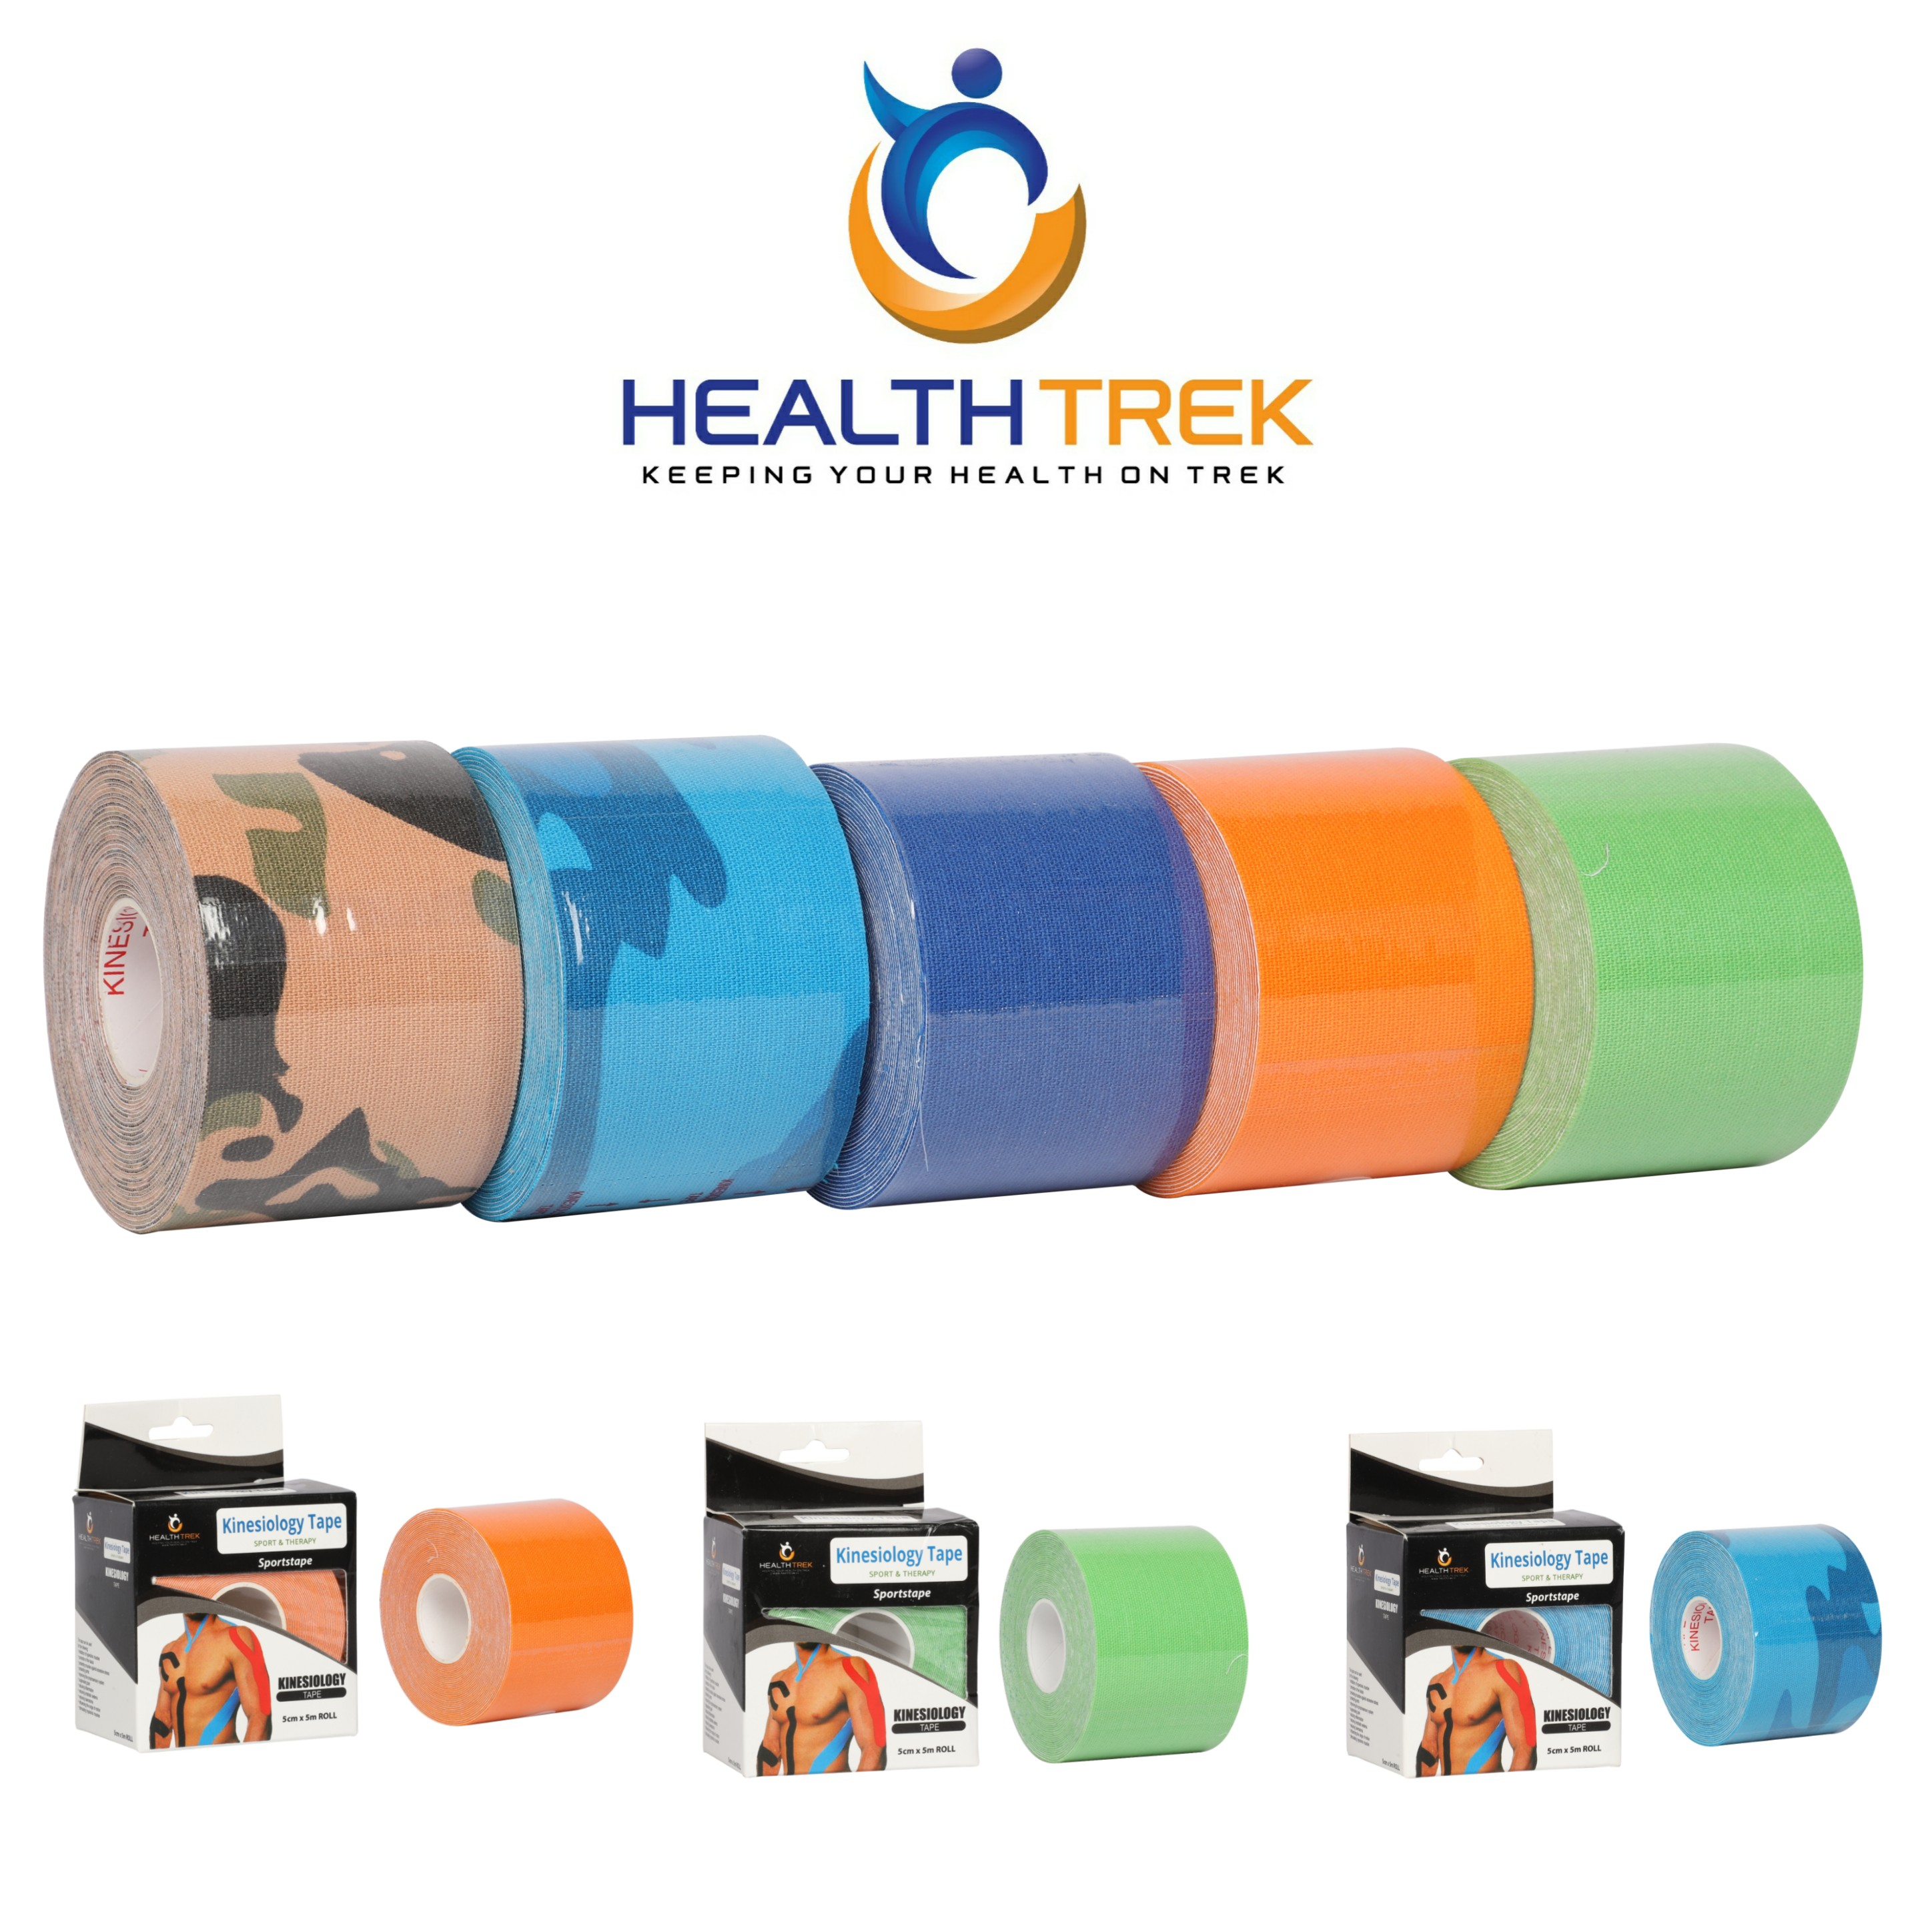 Healthtrek Therapeutic & Sports Kinesiology Tape